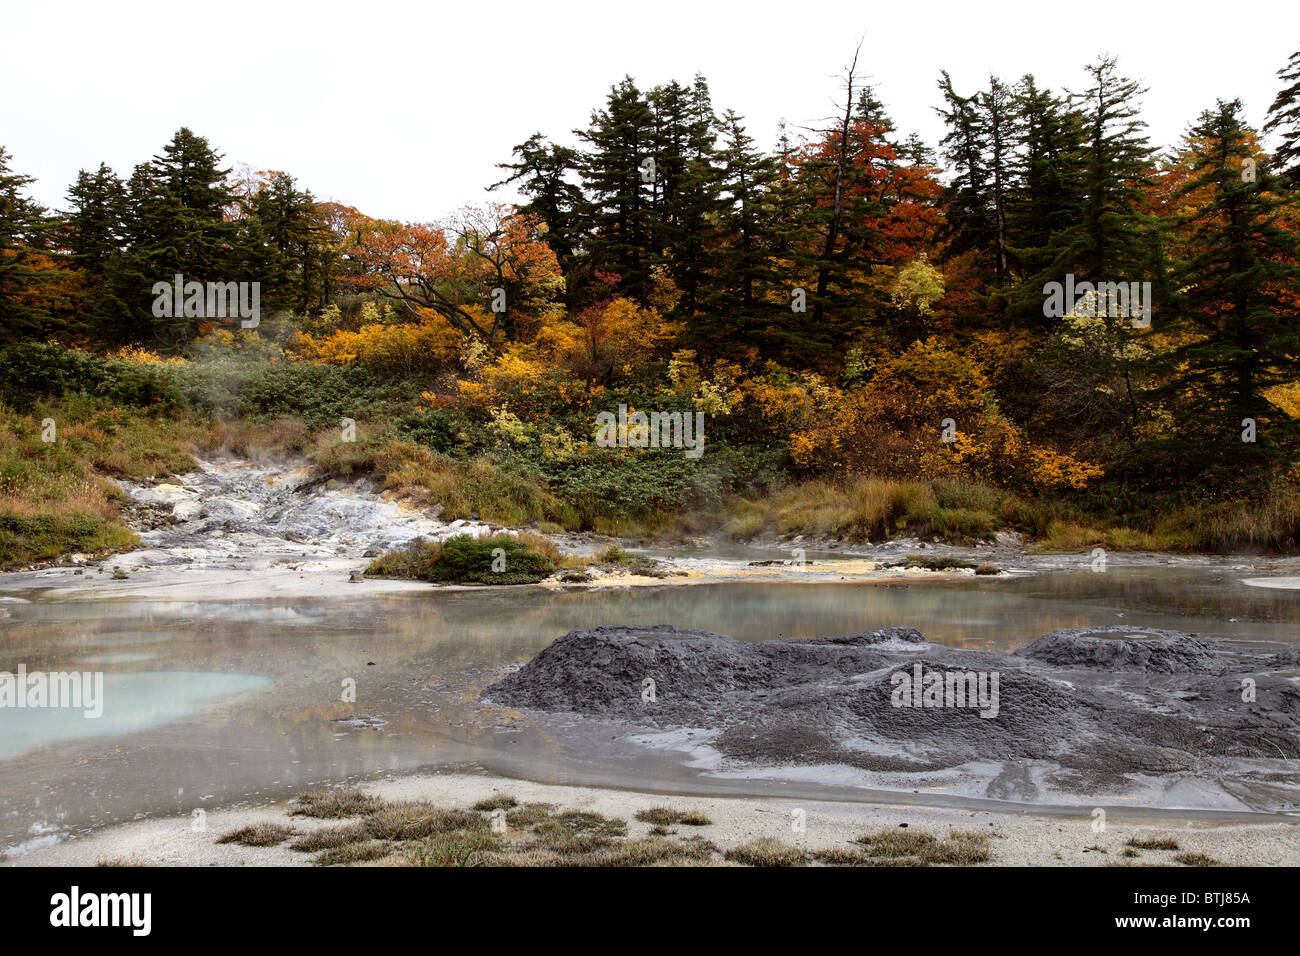 Goshogake Hot spring Japon Akita Photo Stock